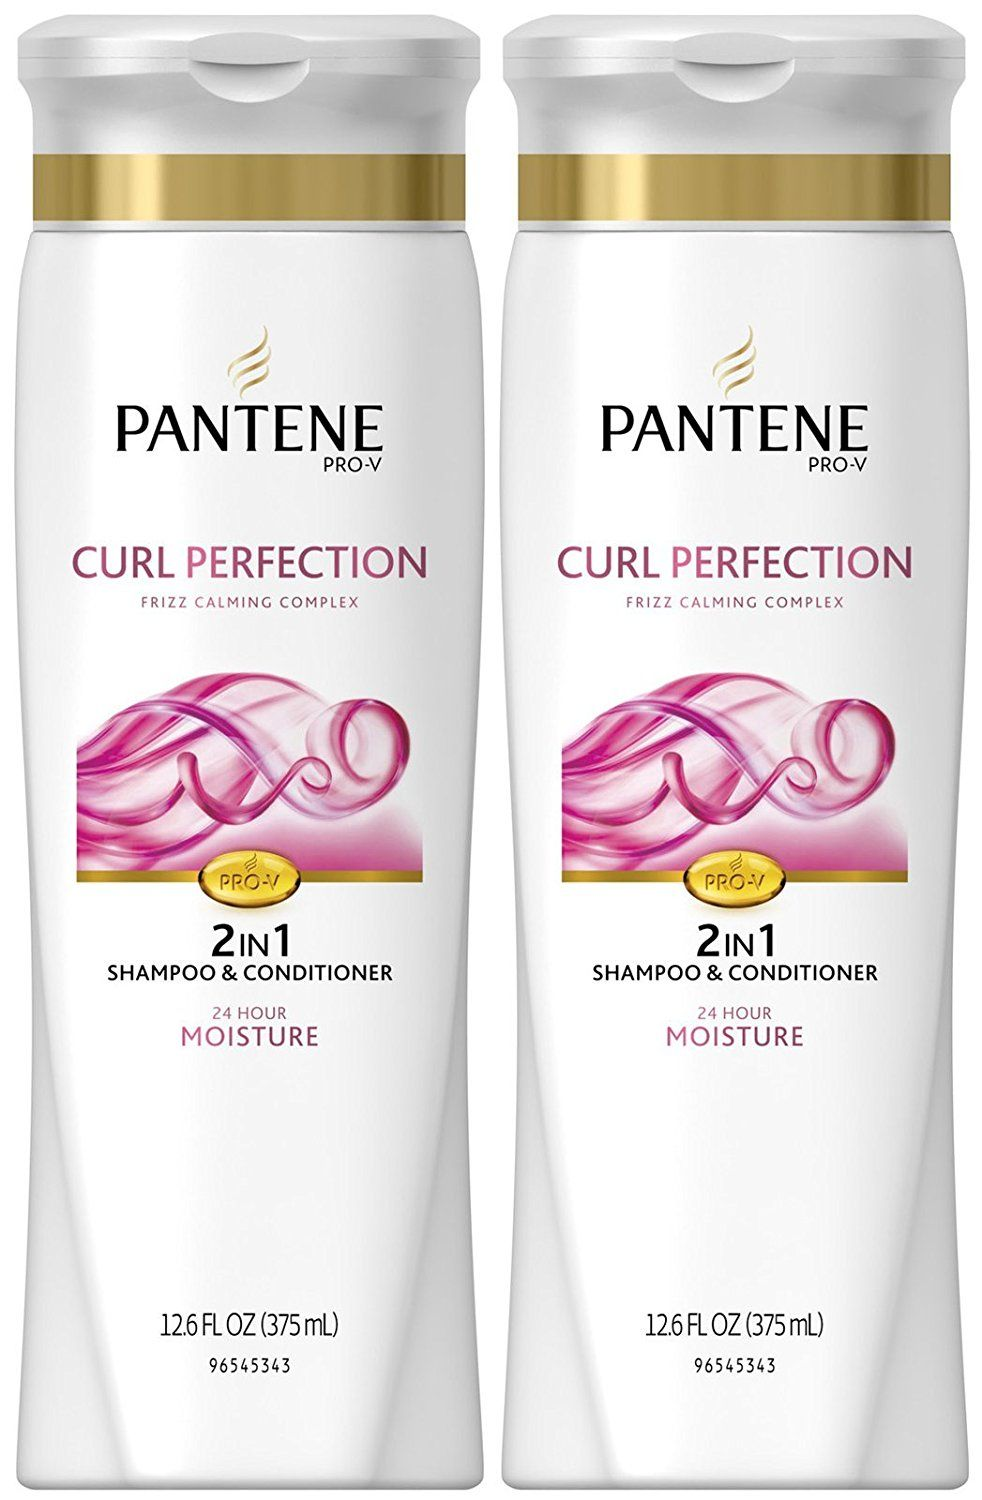 Pantene ProV Curly Hair Curl Perfection 2in1 Shampoo